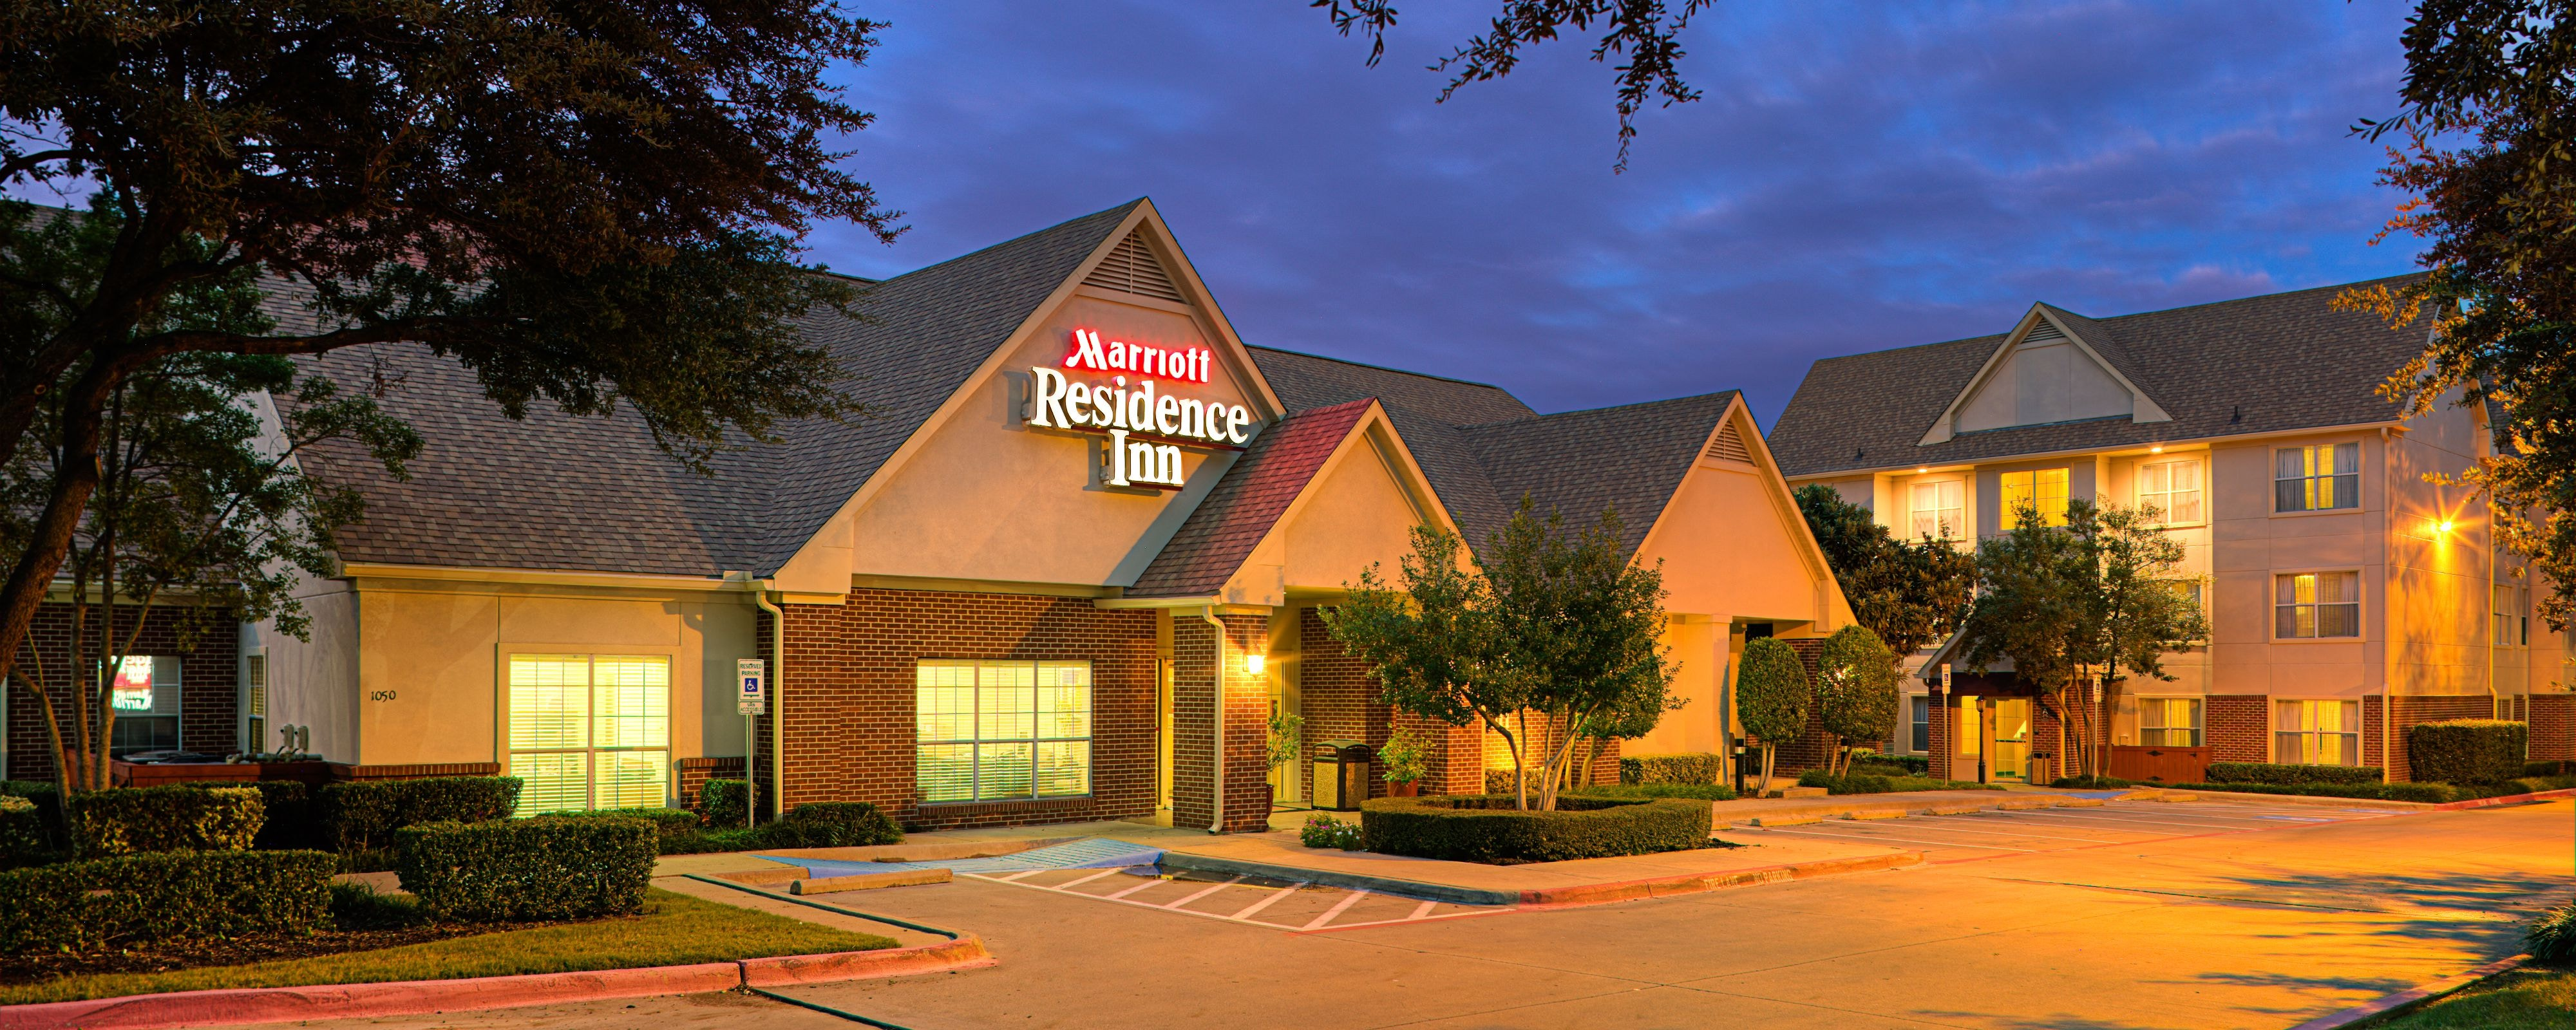 Restaurants Near Marriott Residence Inn Arlington